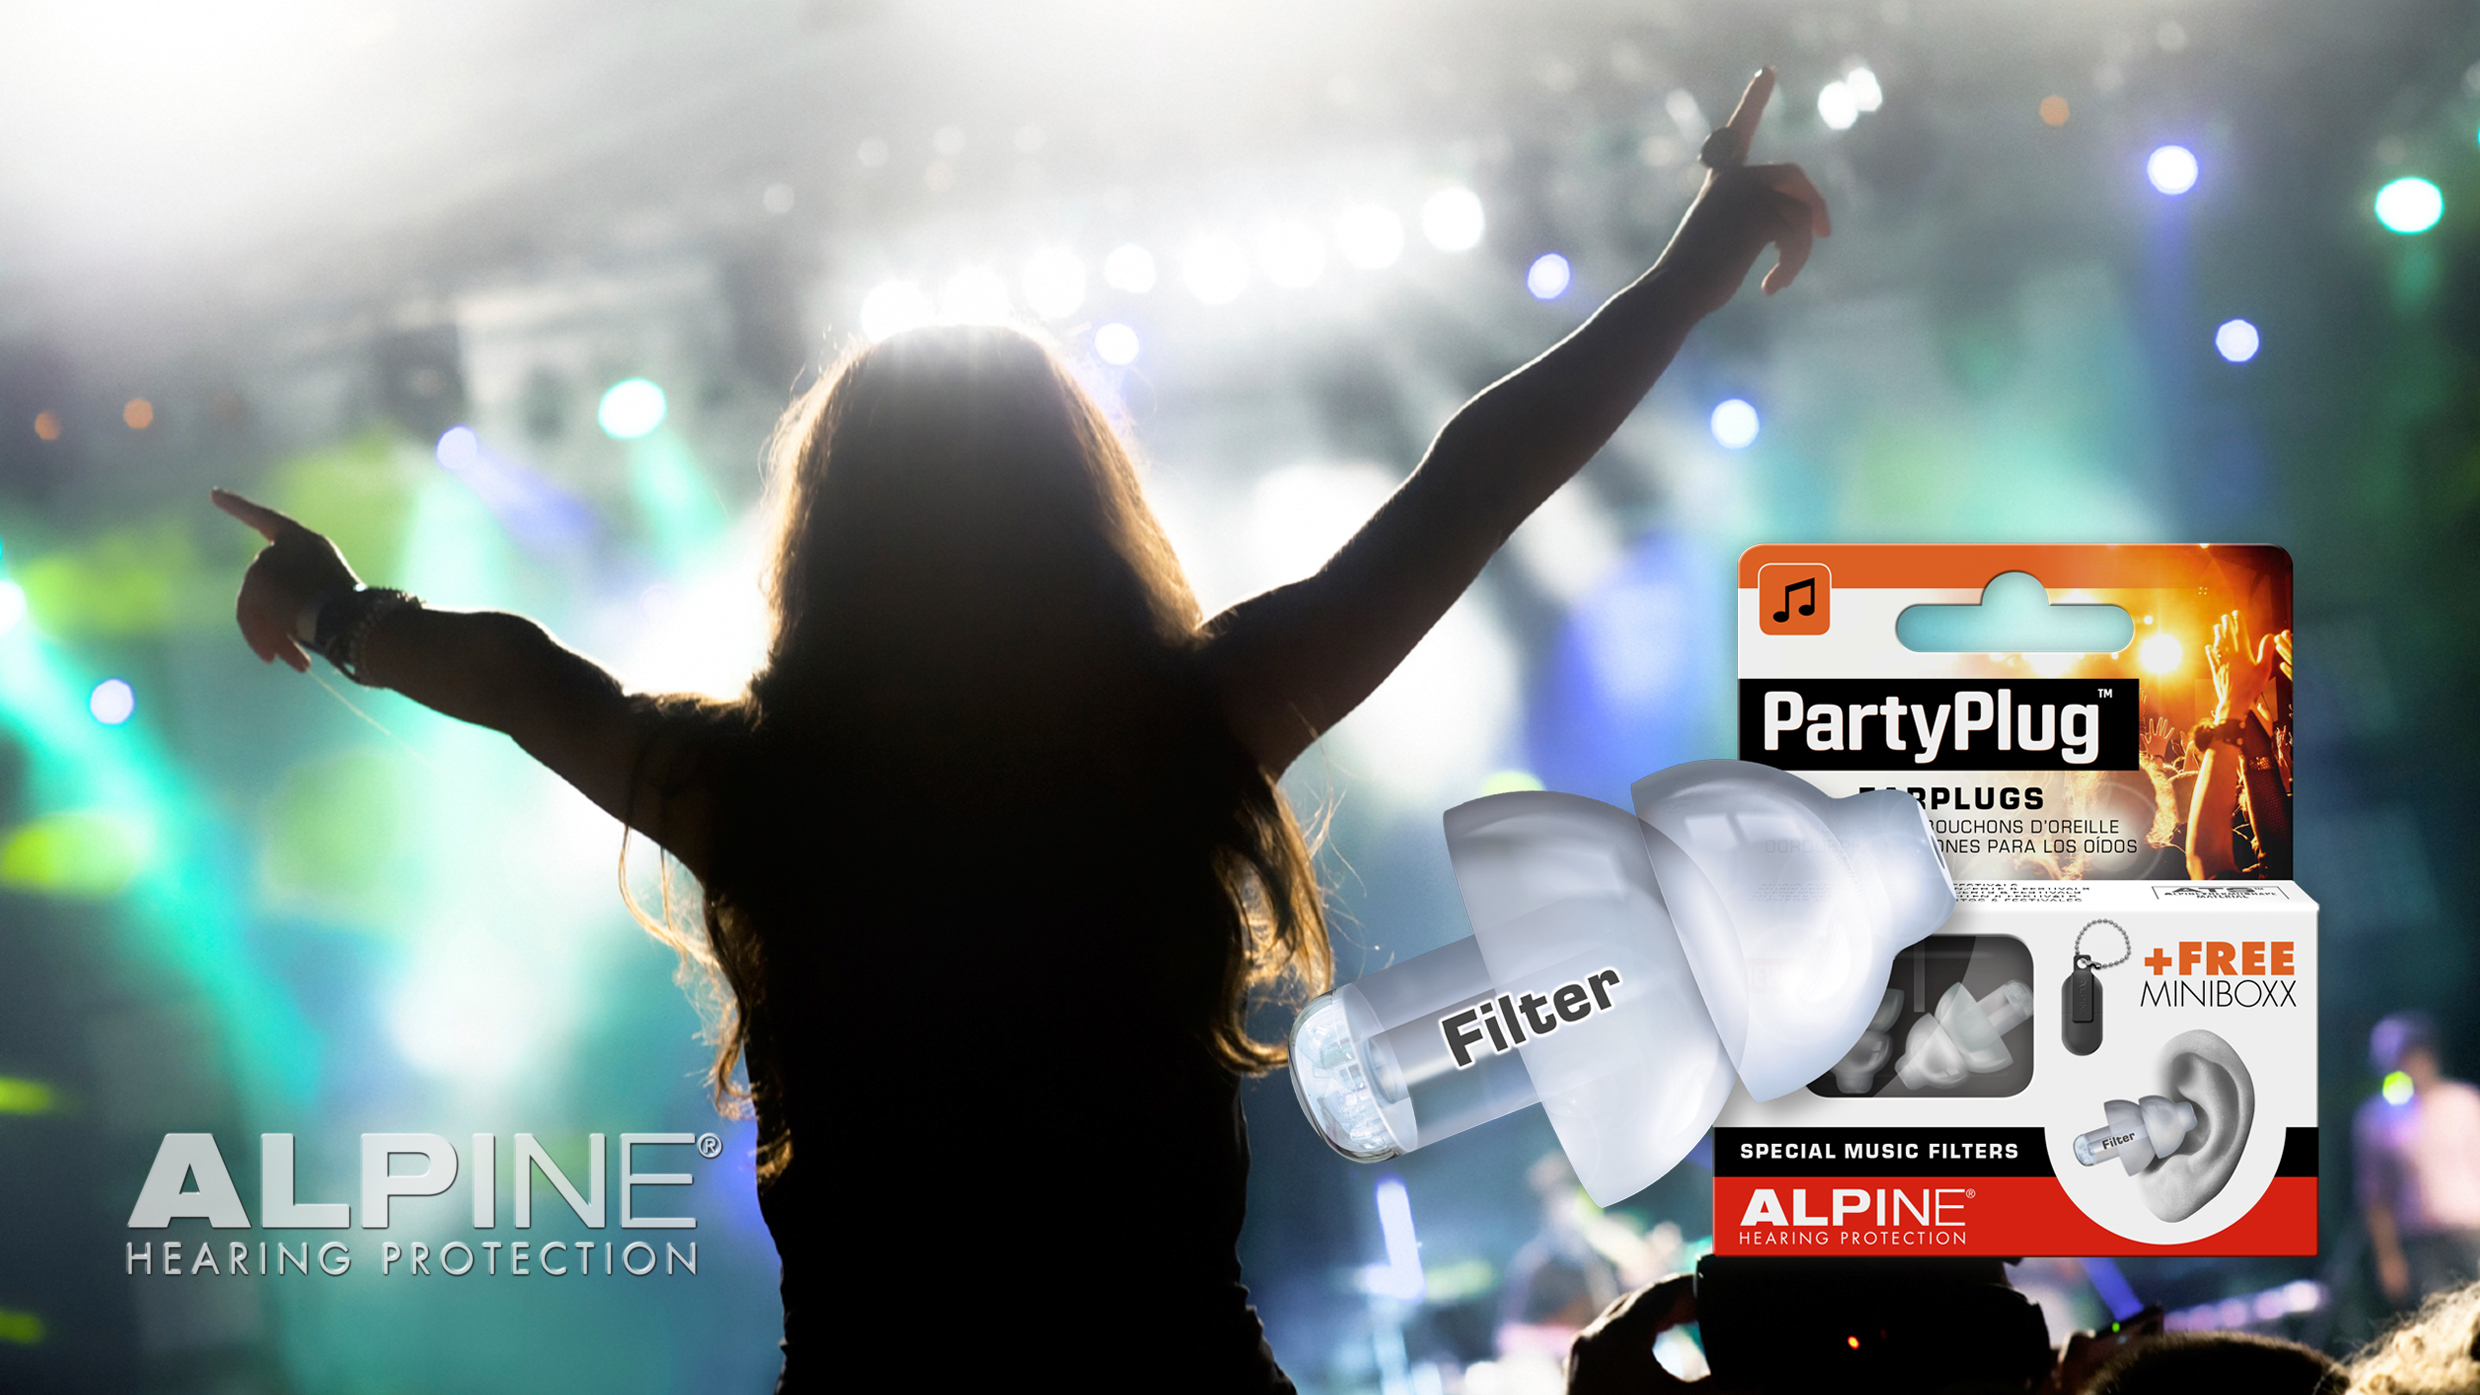 alpine-partyplug-with-picture-festival